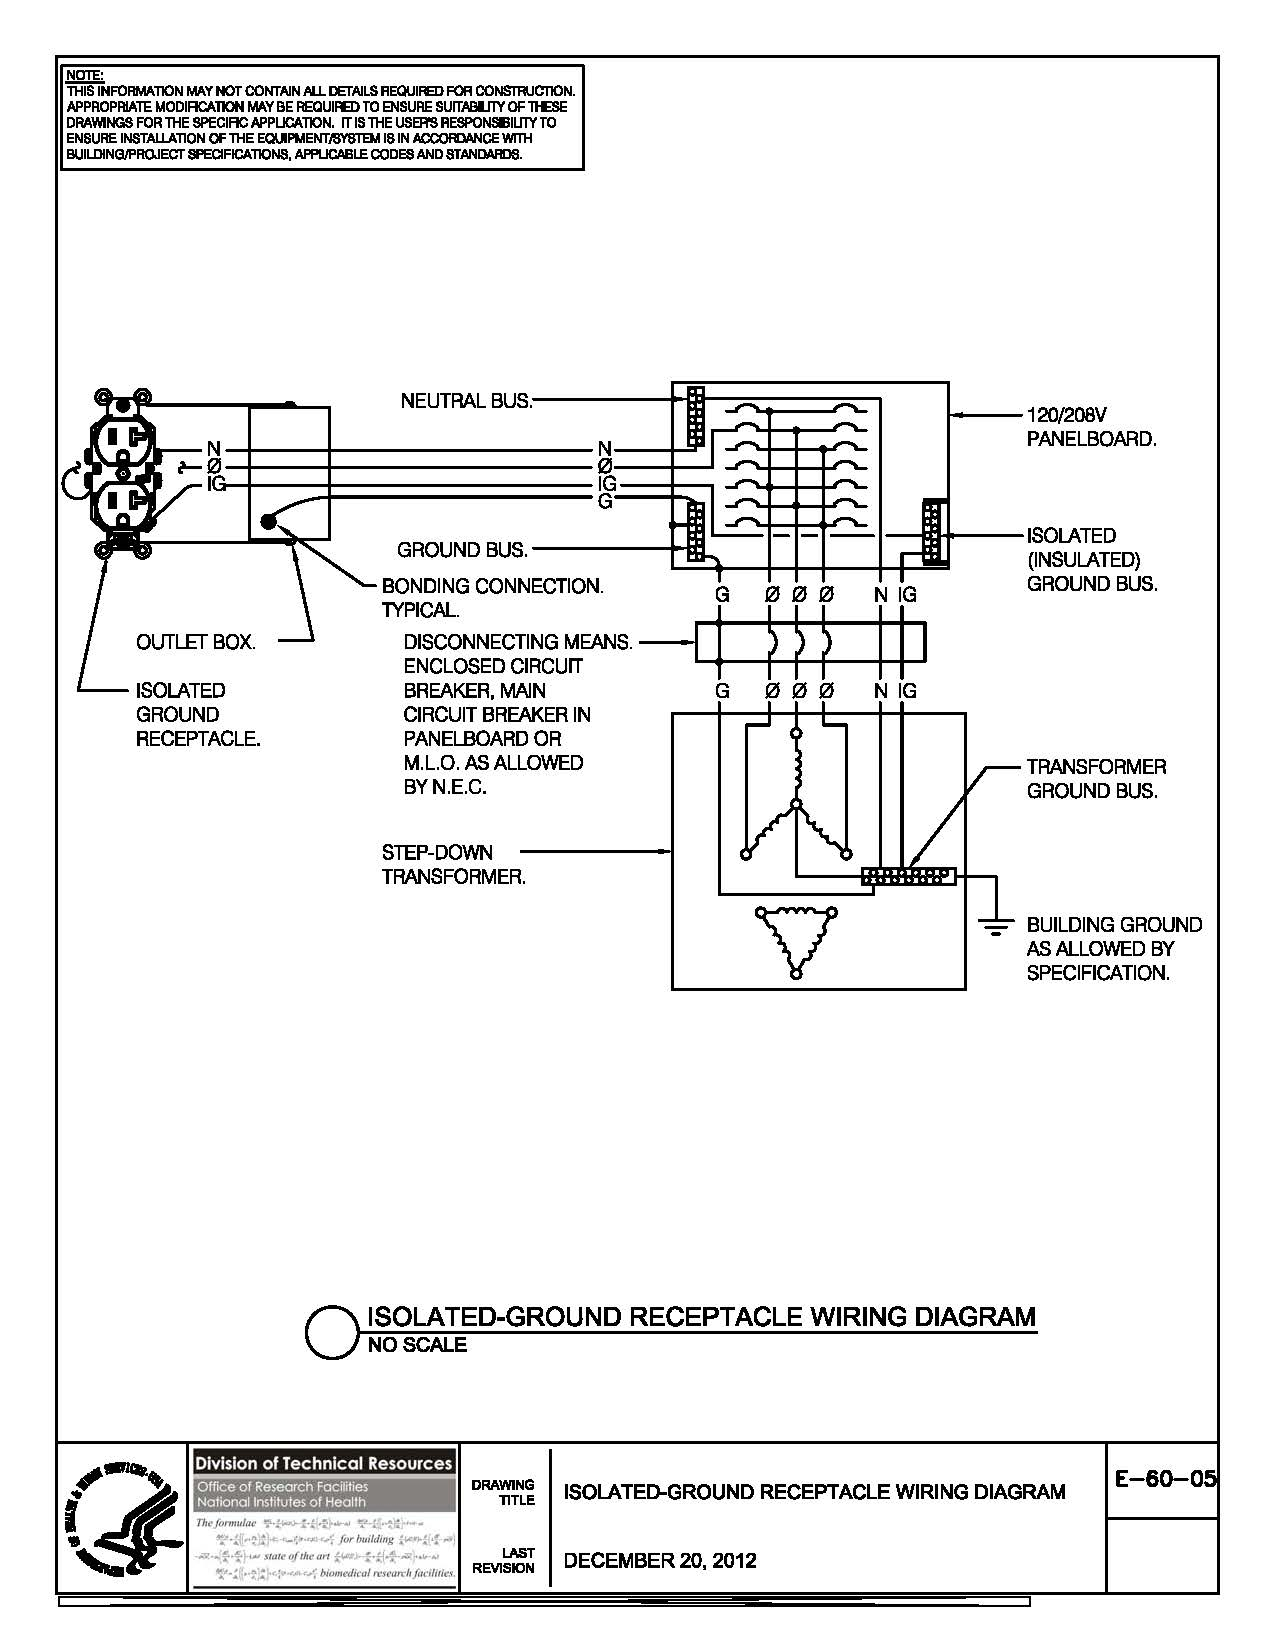 Ignition Interlock Wiring Diagram Collection